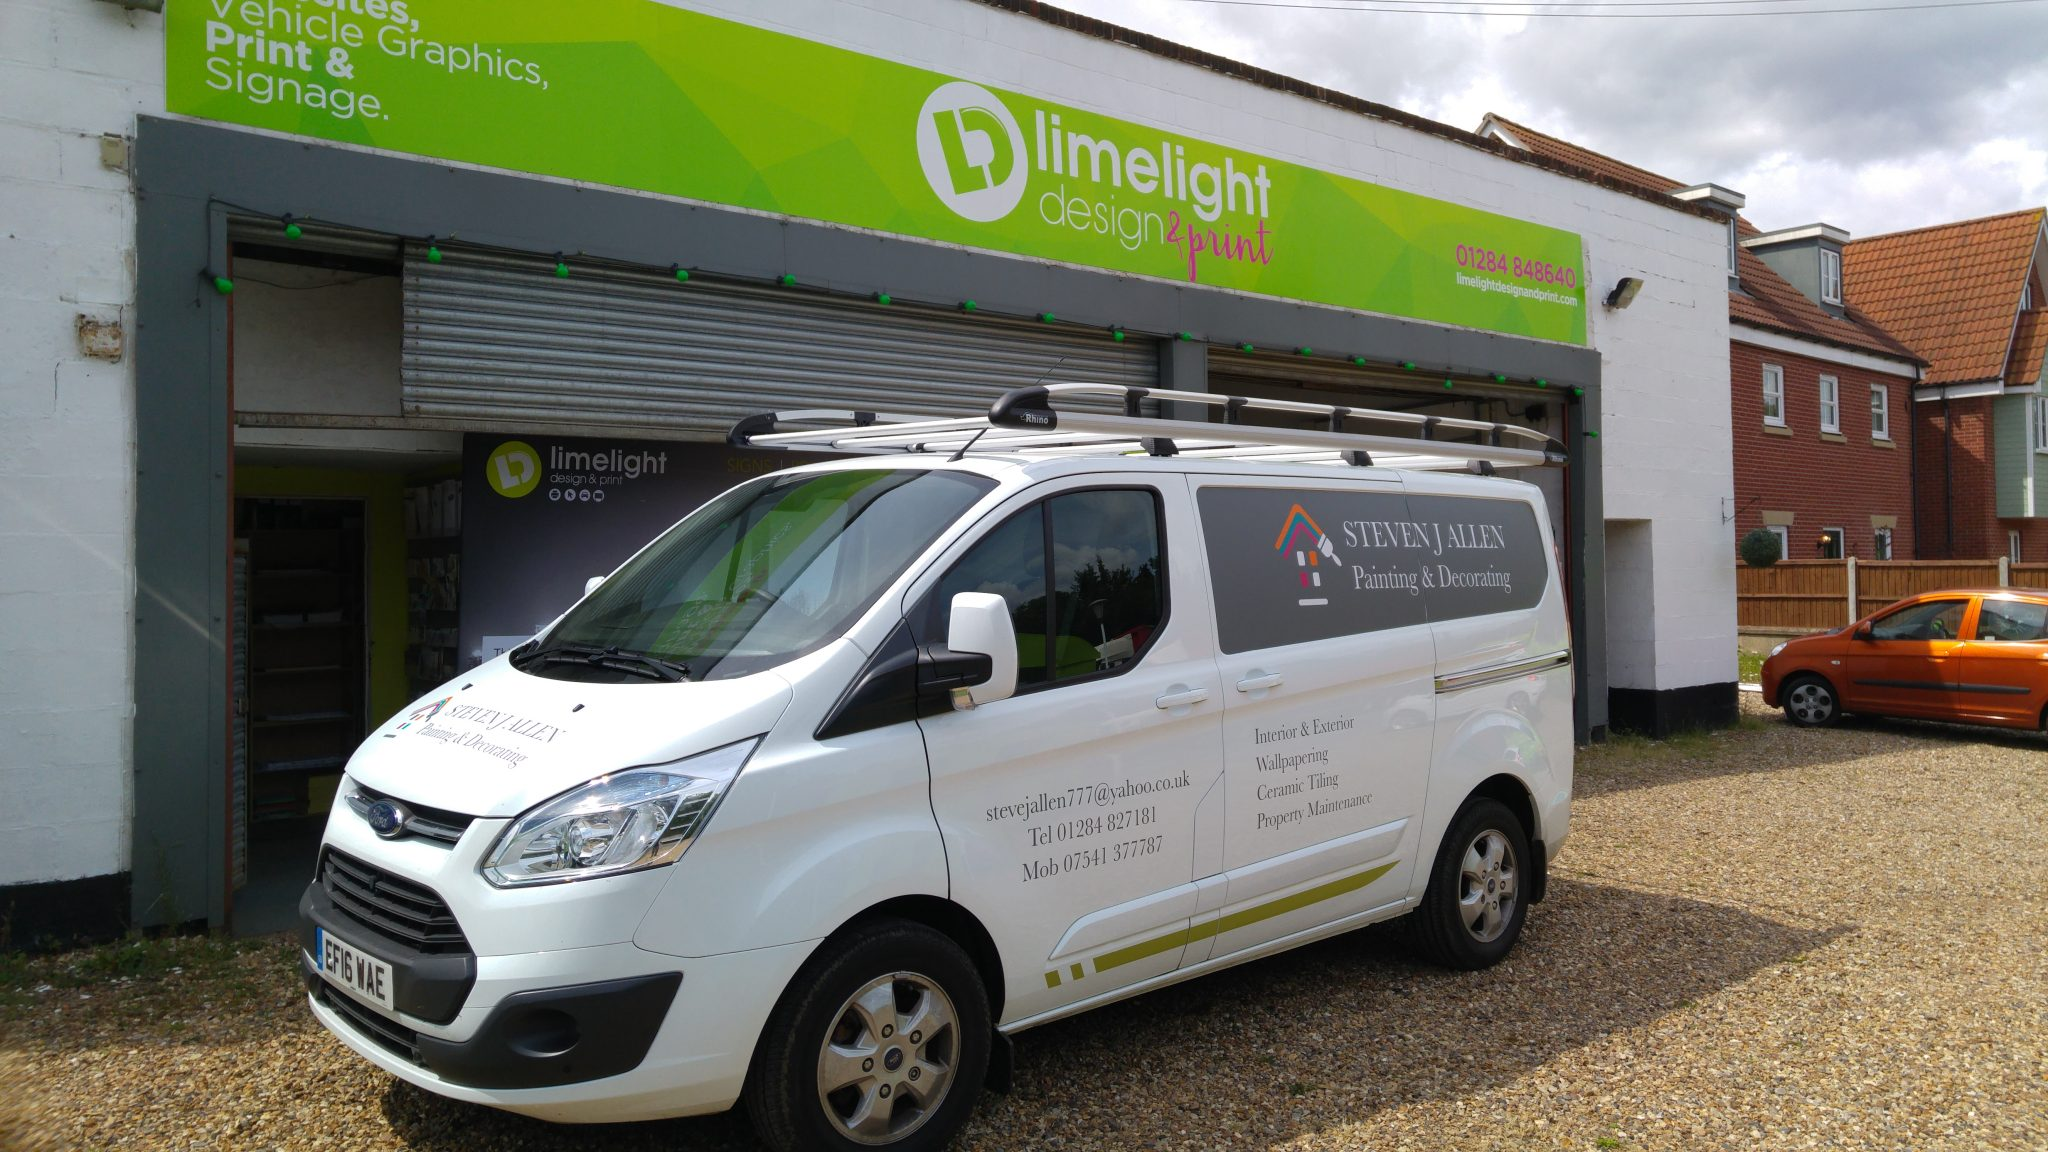 Vehicle Graphics designed, printed & fitted by Limelight Design & Print